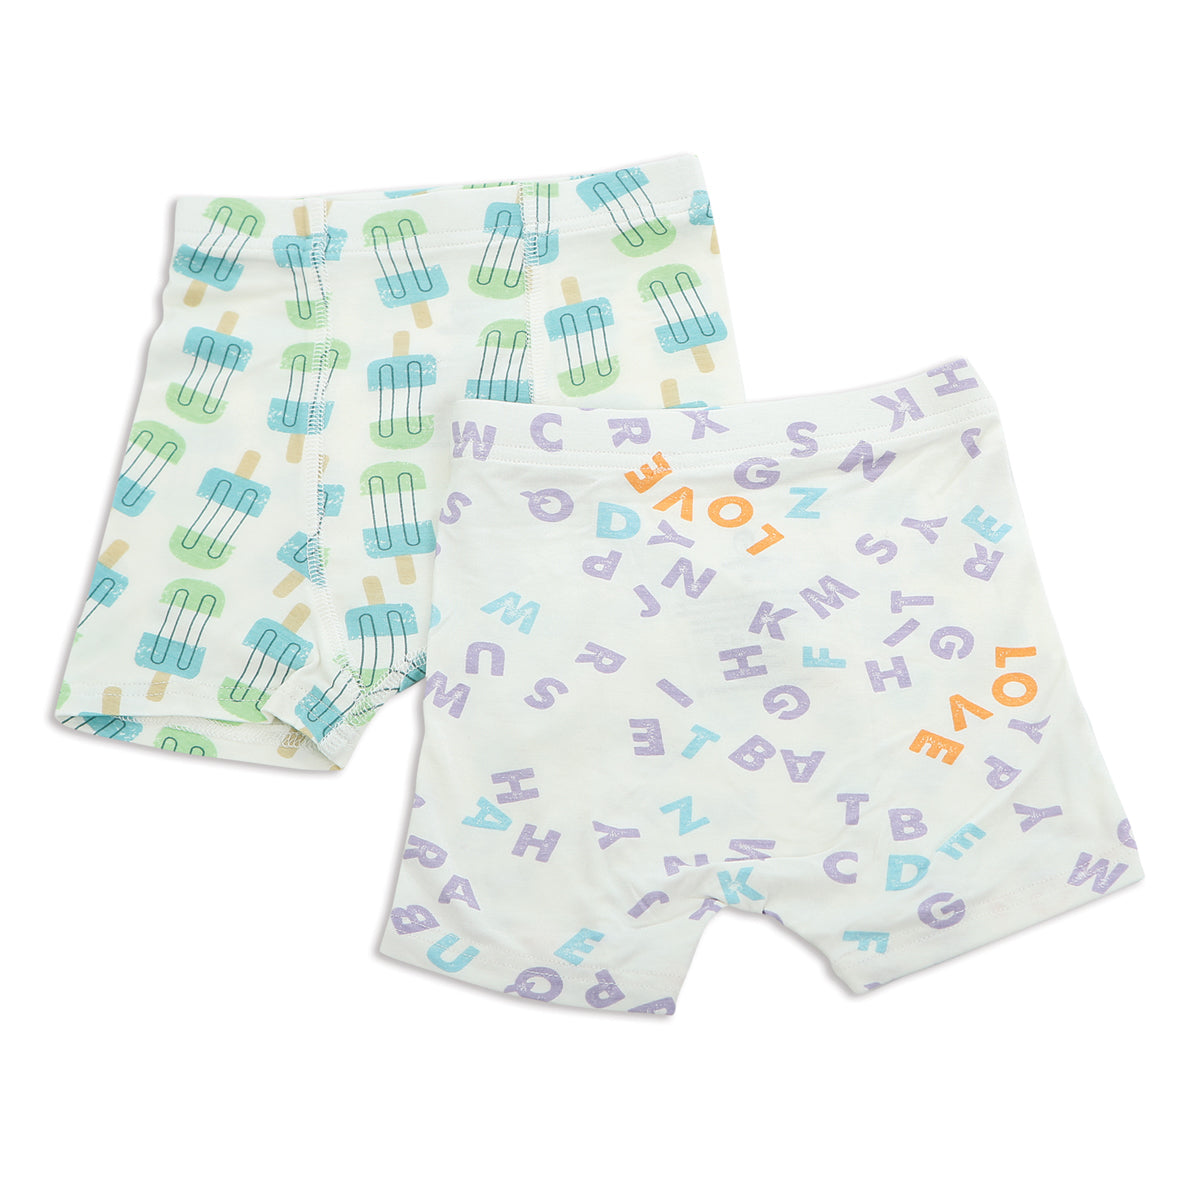 Bamboo Boys Underwear Shorts (2 Pack) - Popsicle Print & Alphabet Print